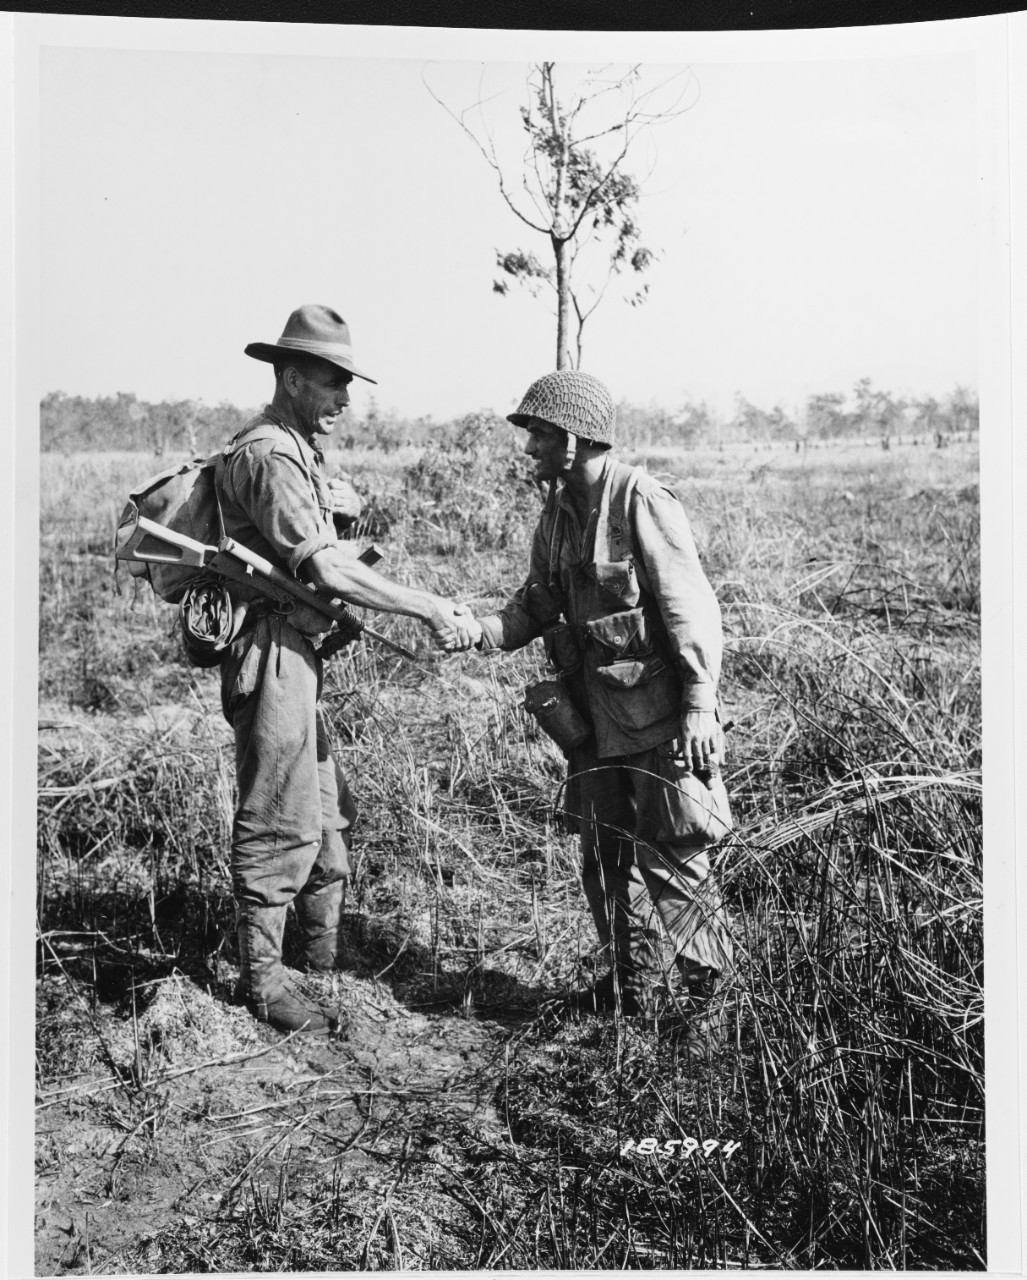 """SC 185994 Nadzab Airfield, near Lae, New Guinea. An Australian """"Digger"""" and  a U.S. Army Paratrooper meet at Nadzab on 6 September 1943."""